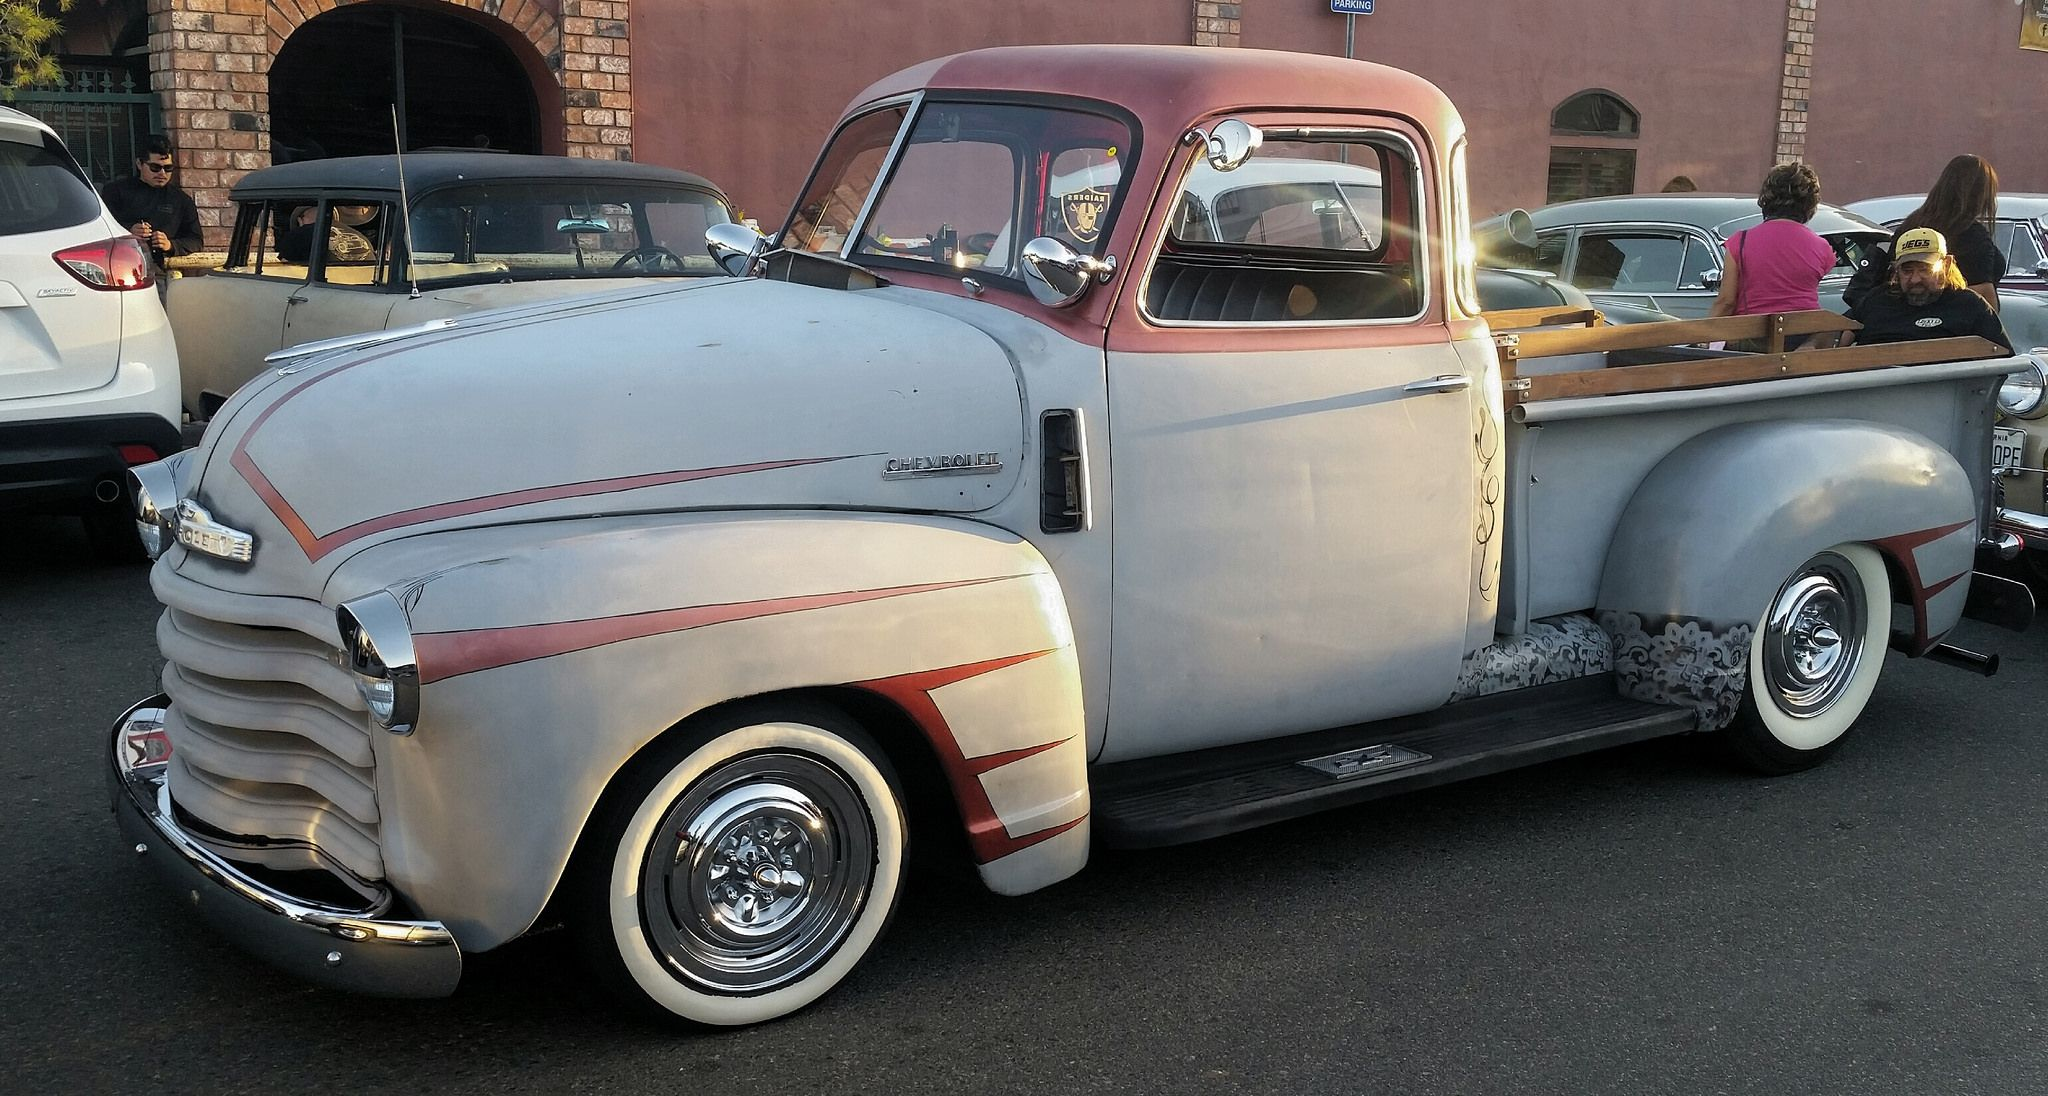 Cool old Chevy truck